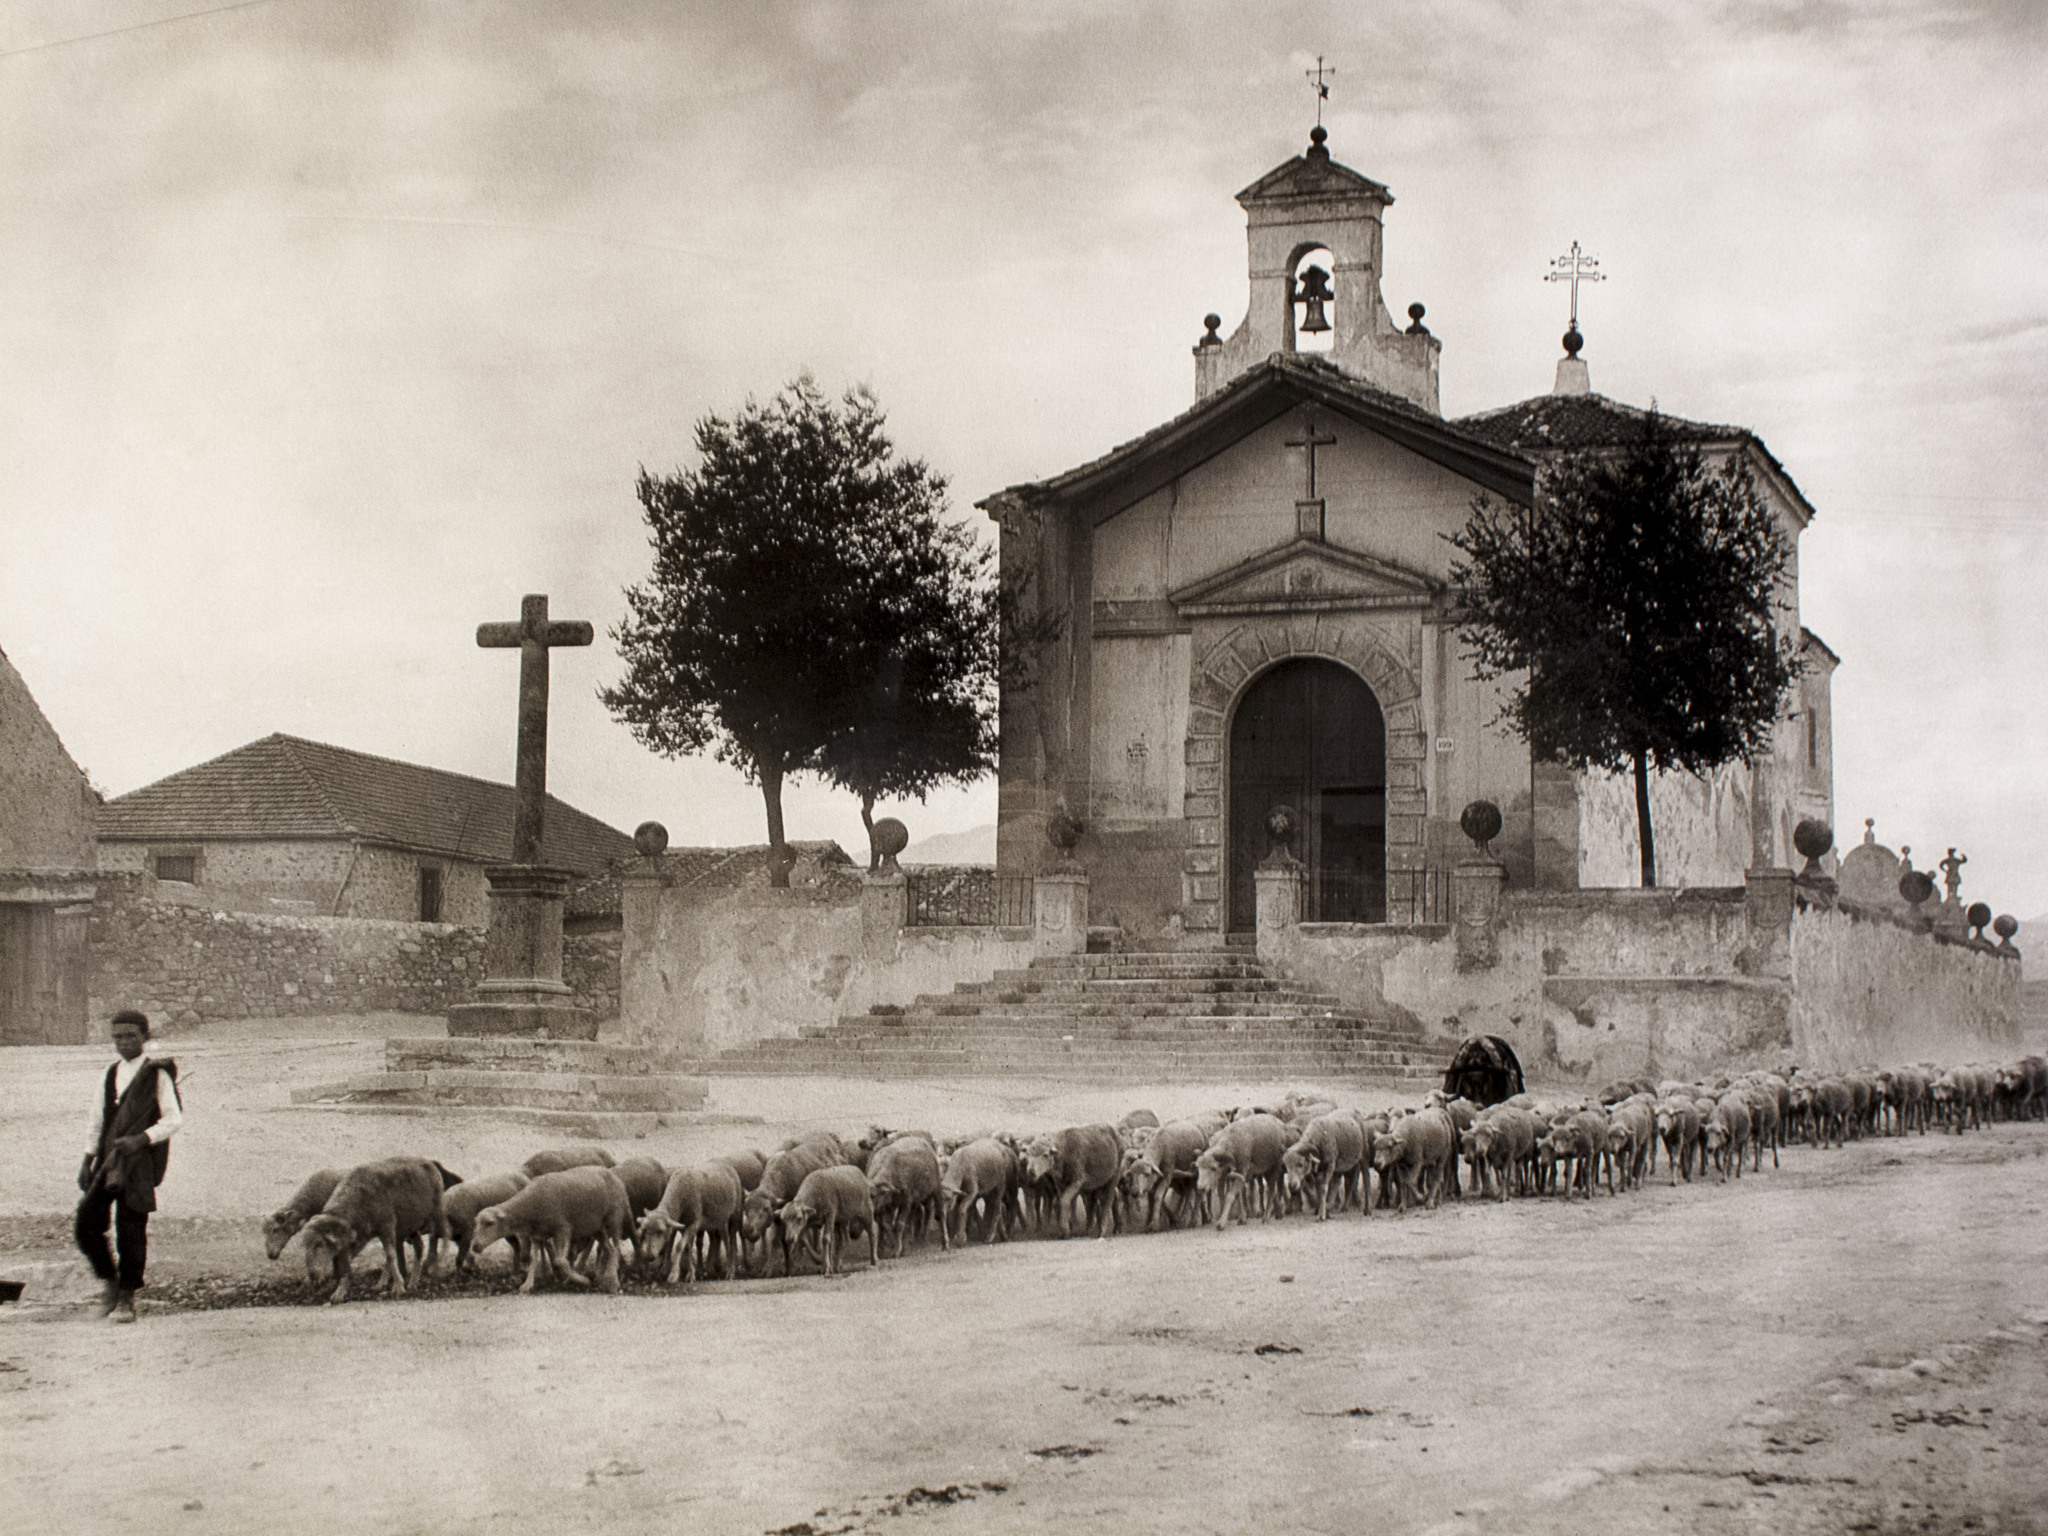 A Glimpse into Spain's Rural Past